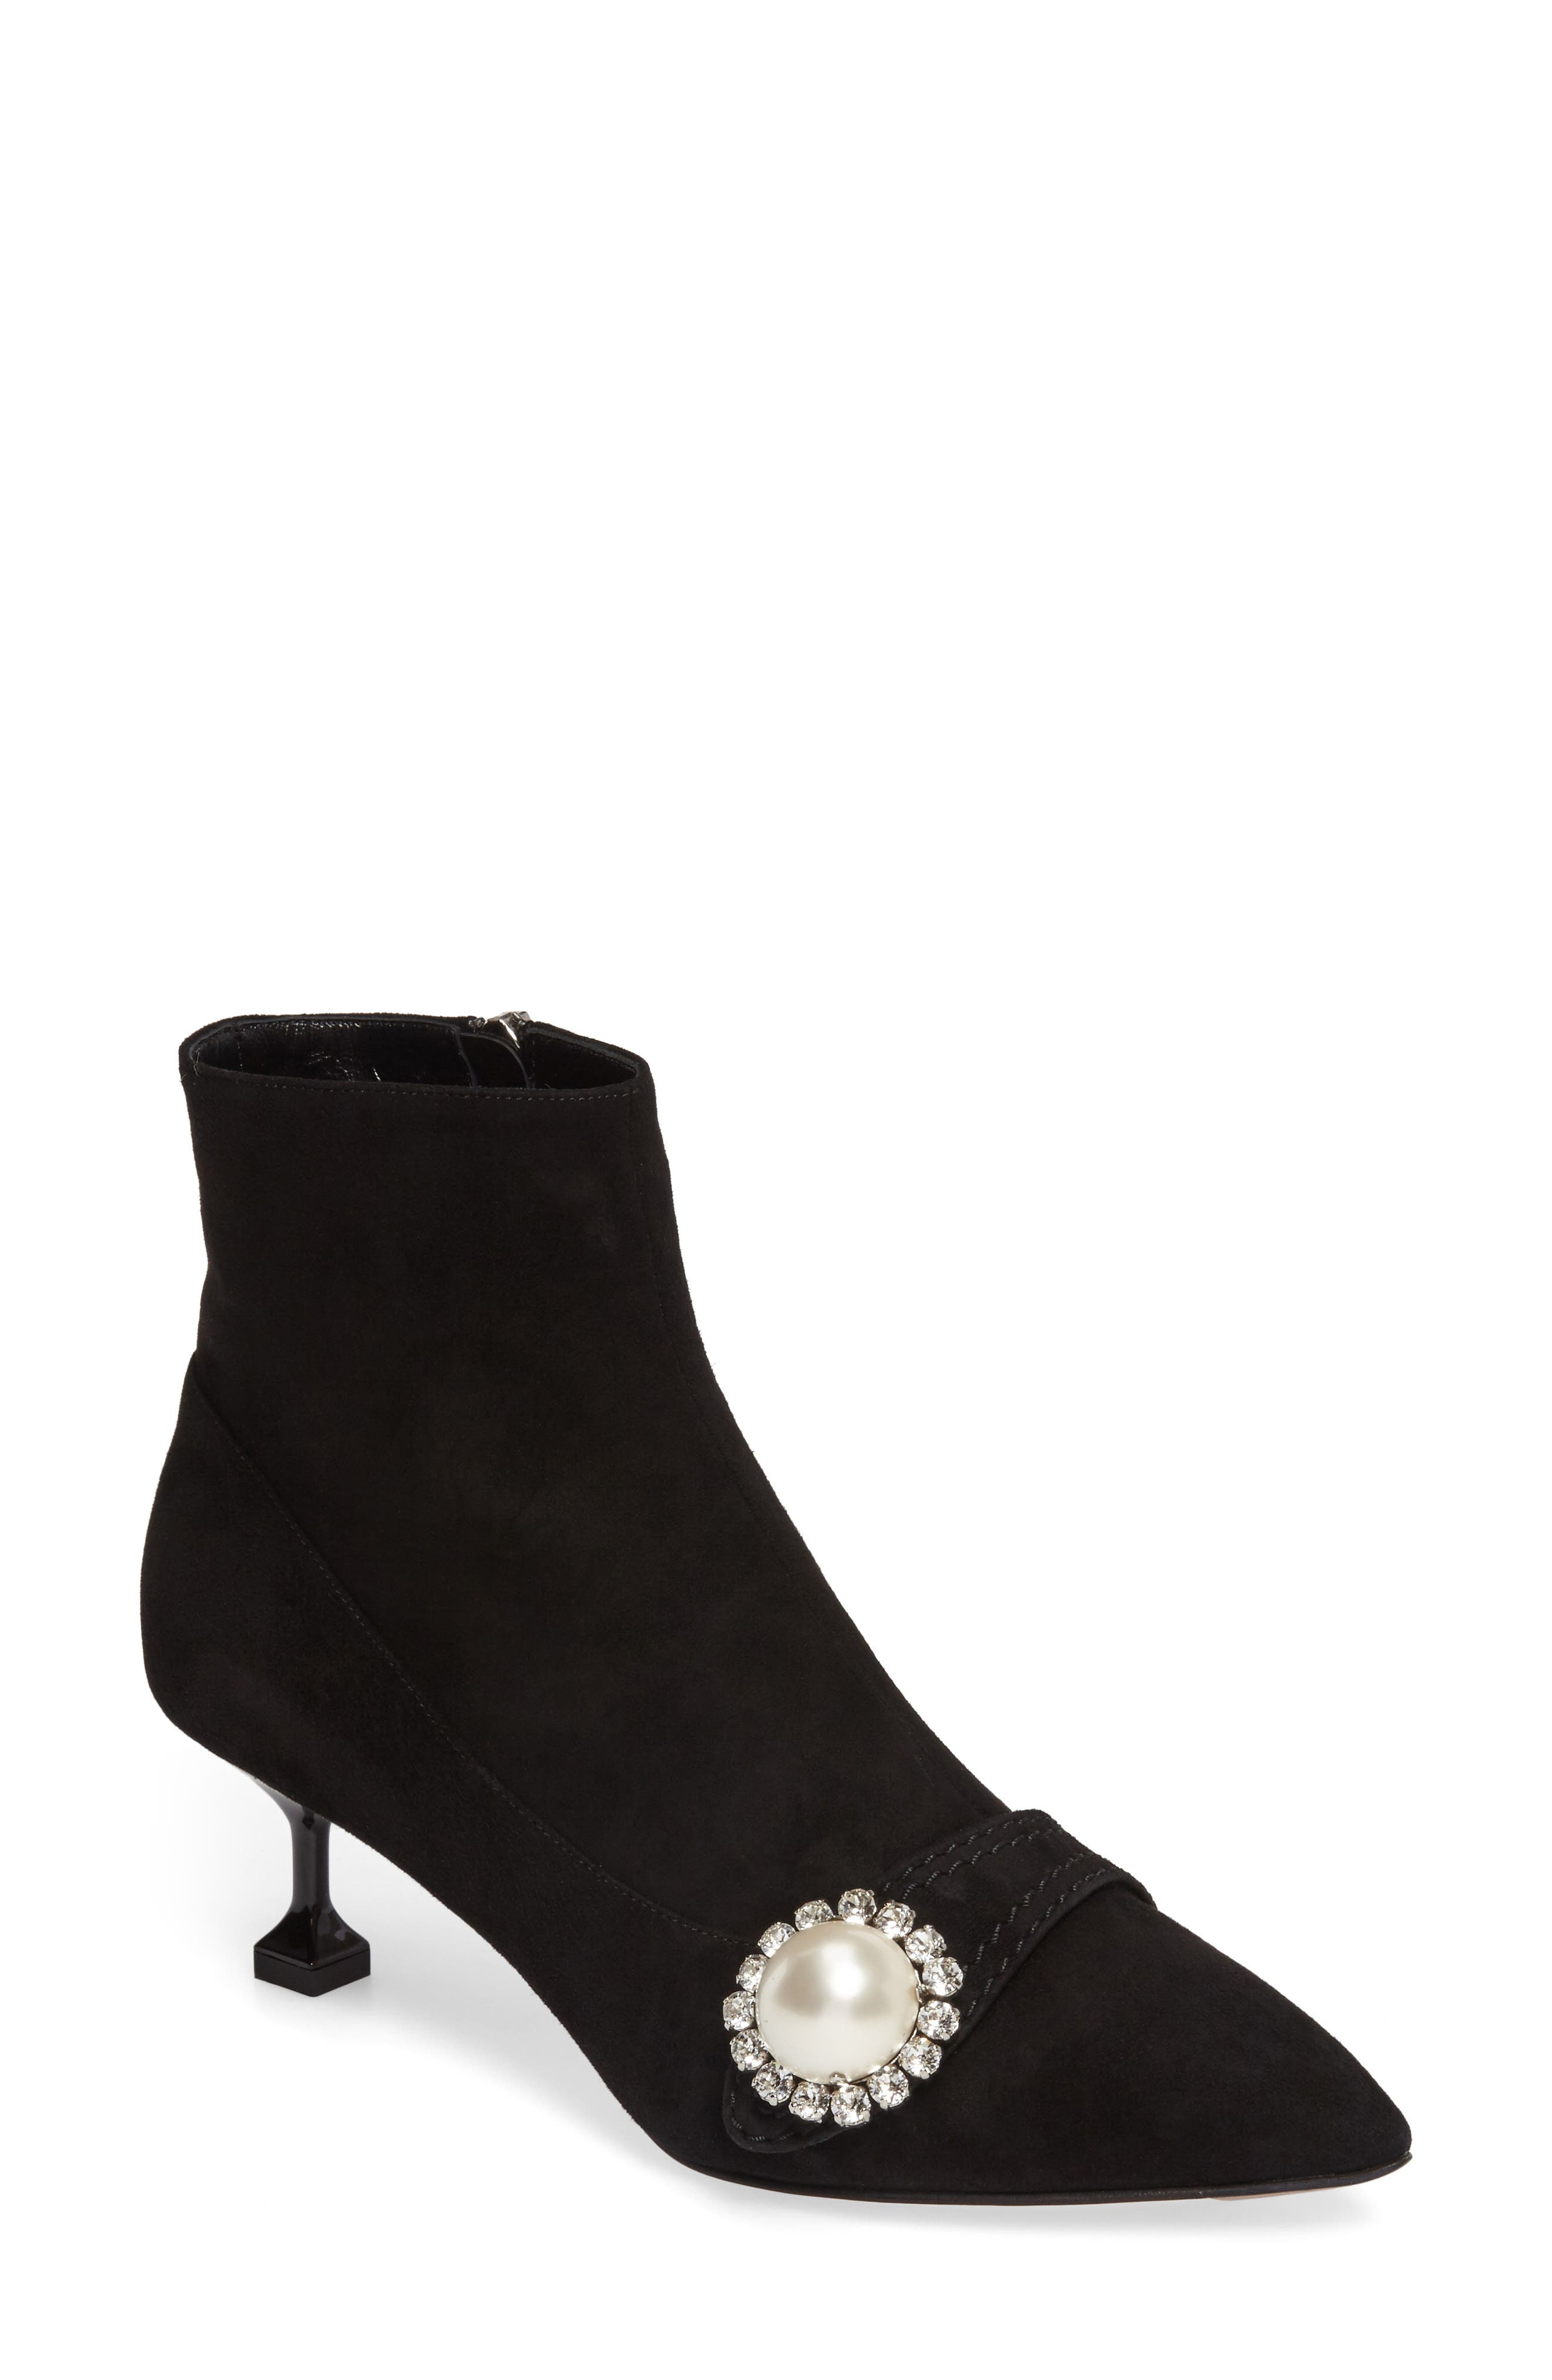 Alternate Image 1 Selected - Miu Miu Embellished Pointy Toe Bootie (Women)